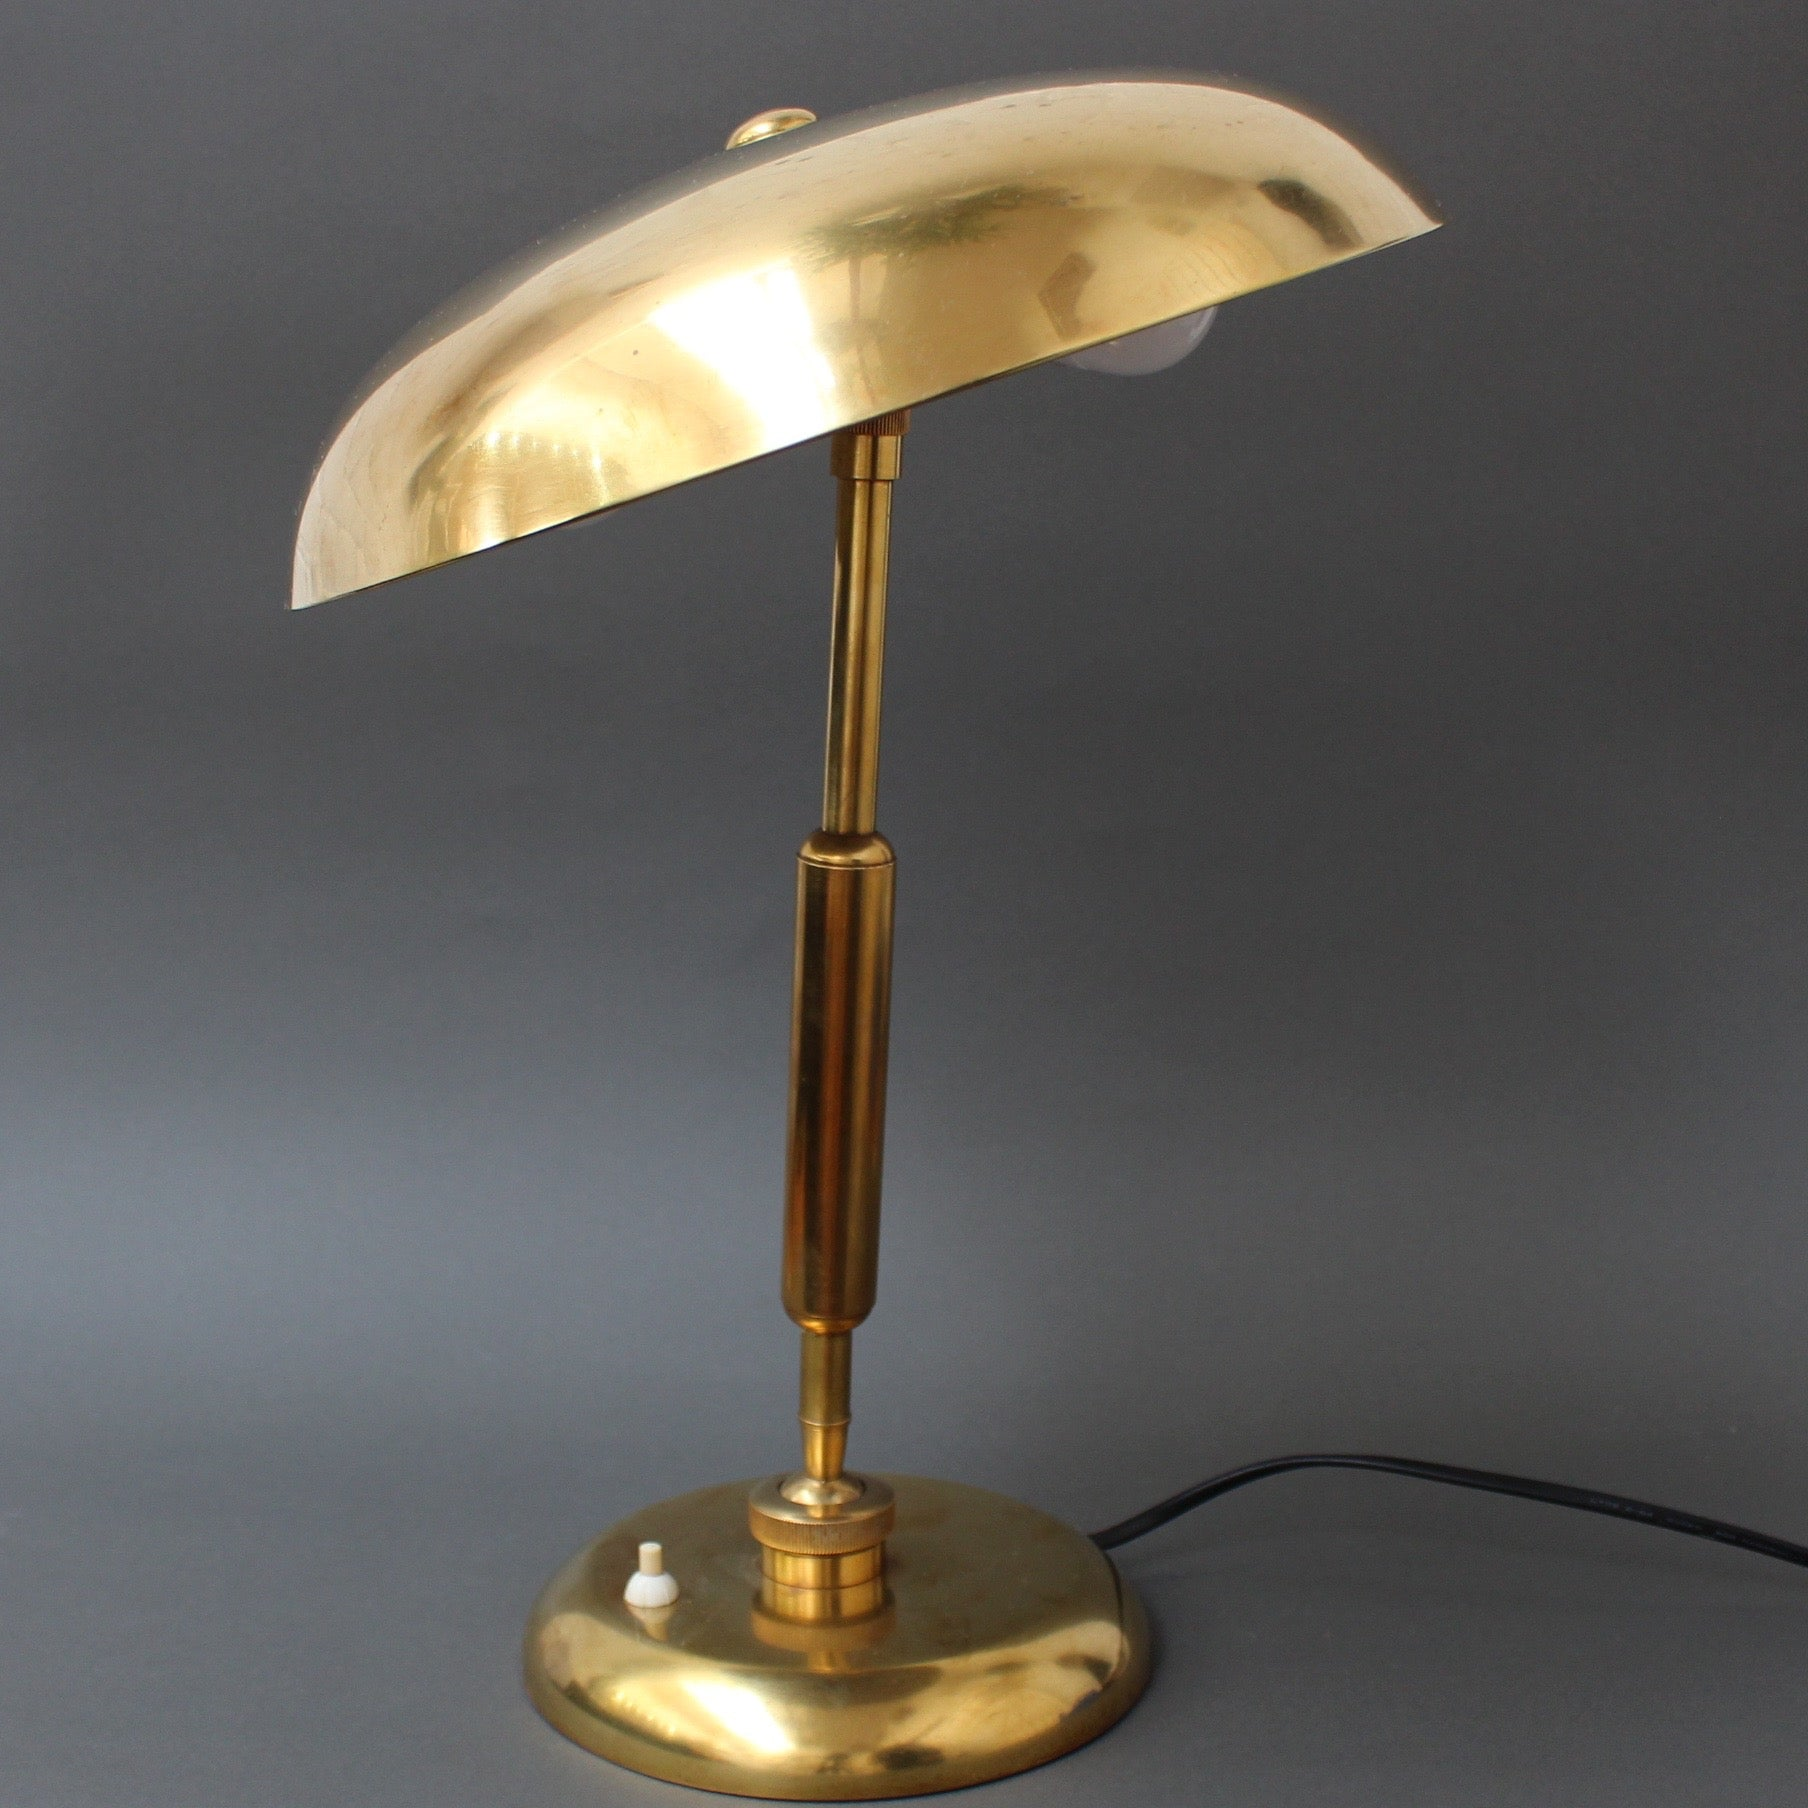 Italian Brass Desk Lamp (circa 1940s)